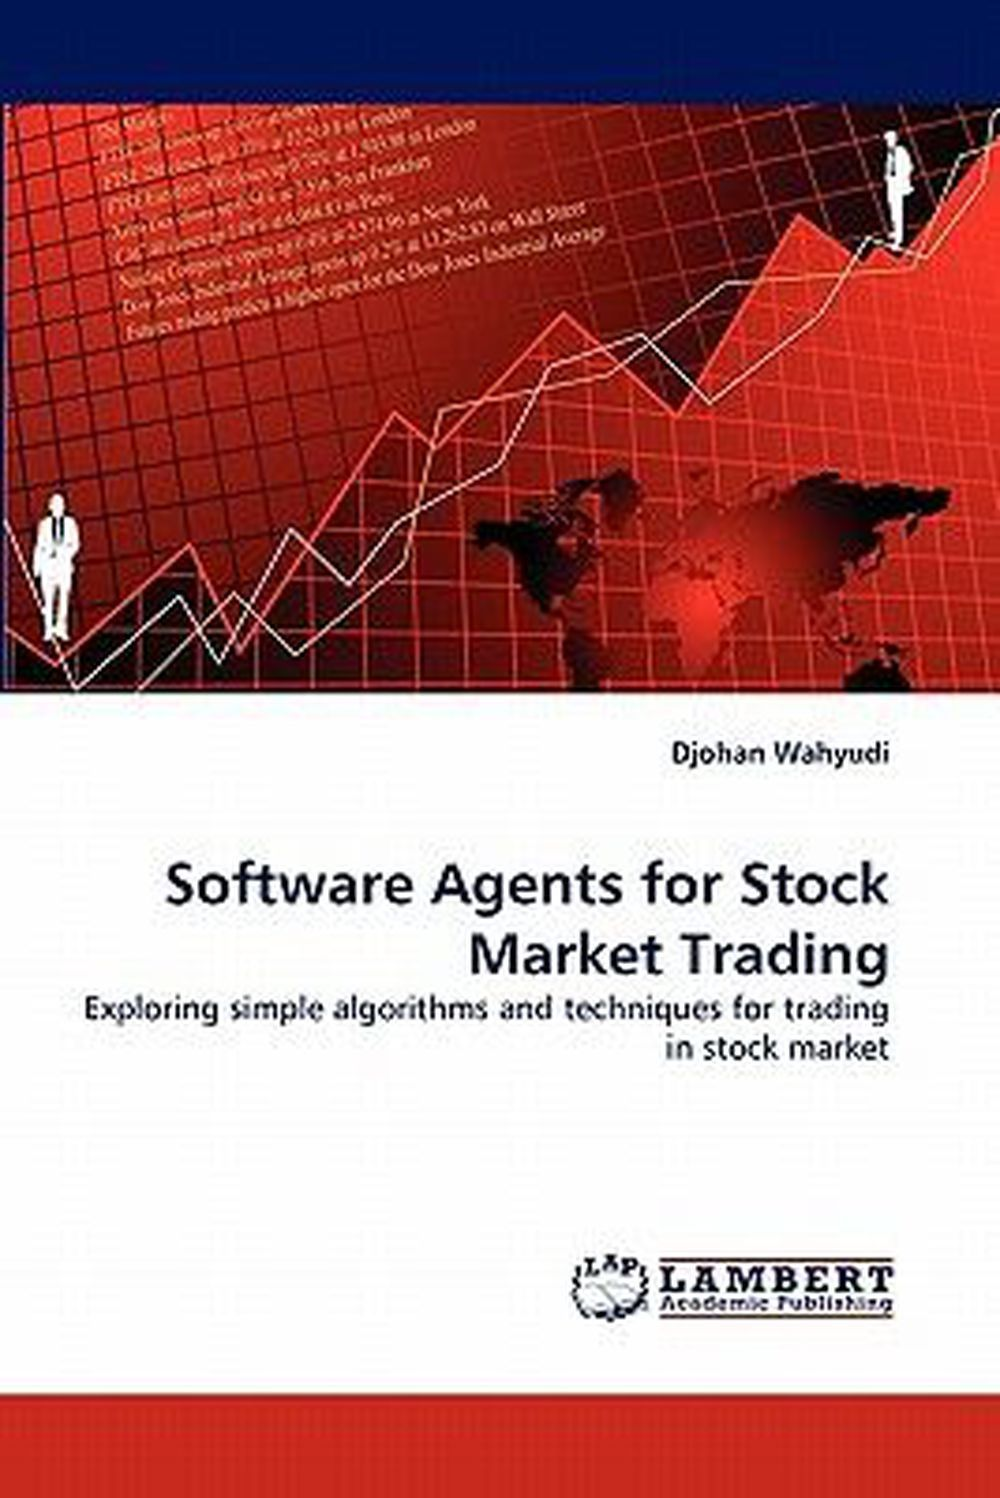 Software Agents for Stock Market Trading: Exploring simple algorithms and techni